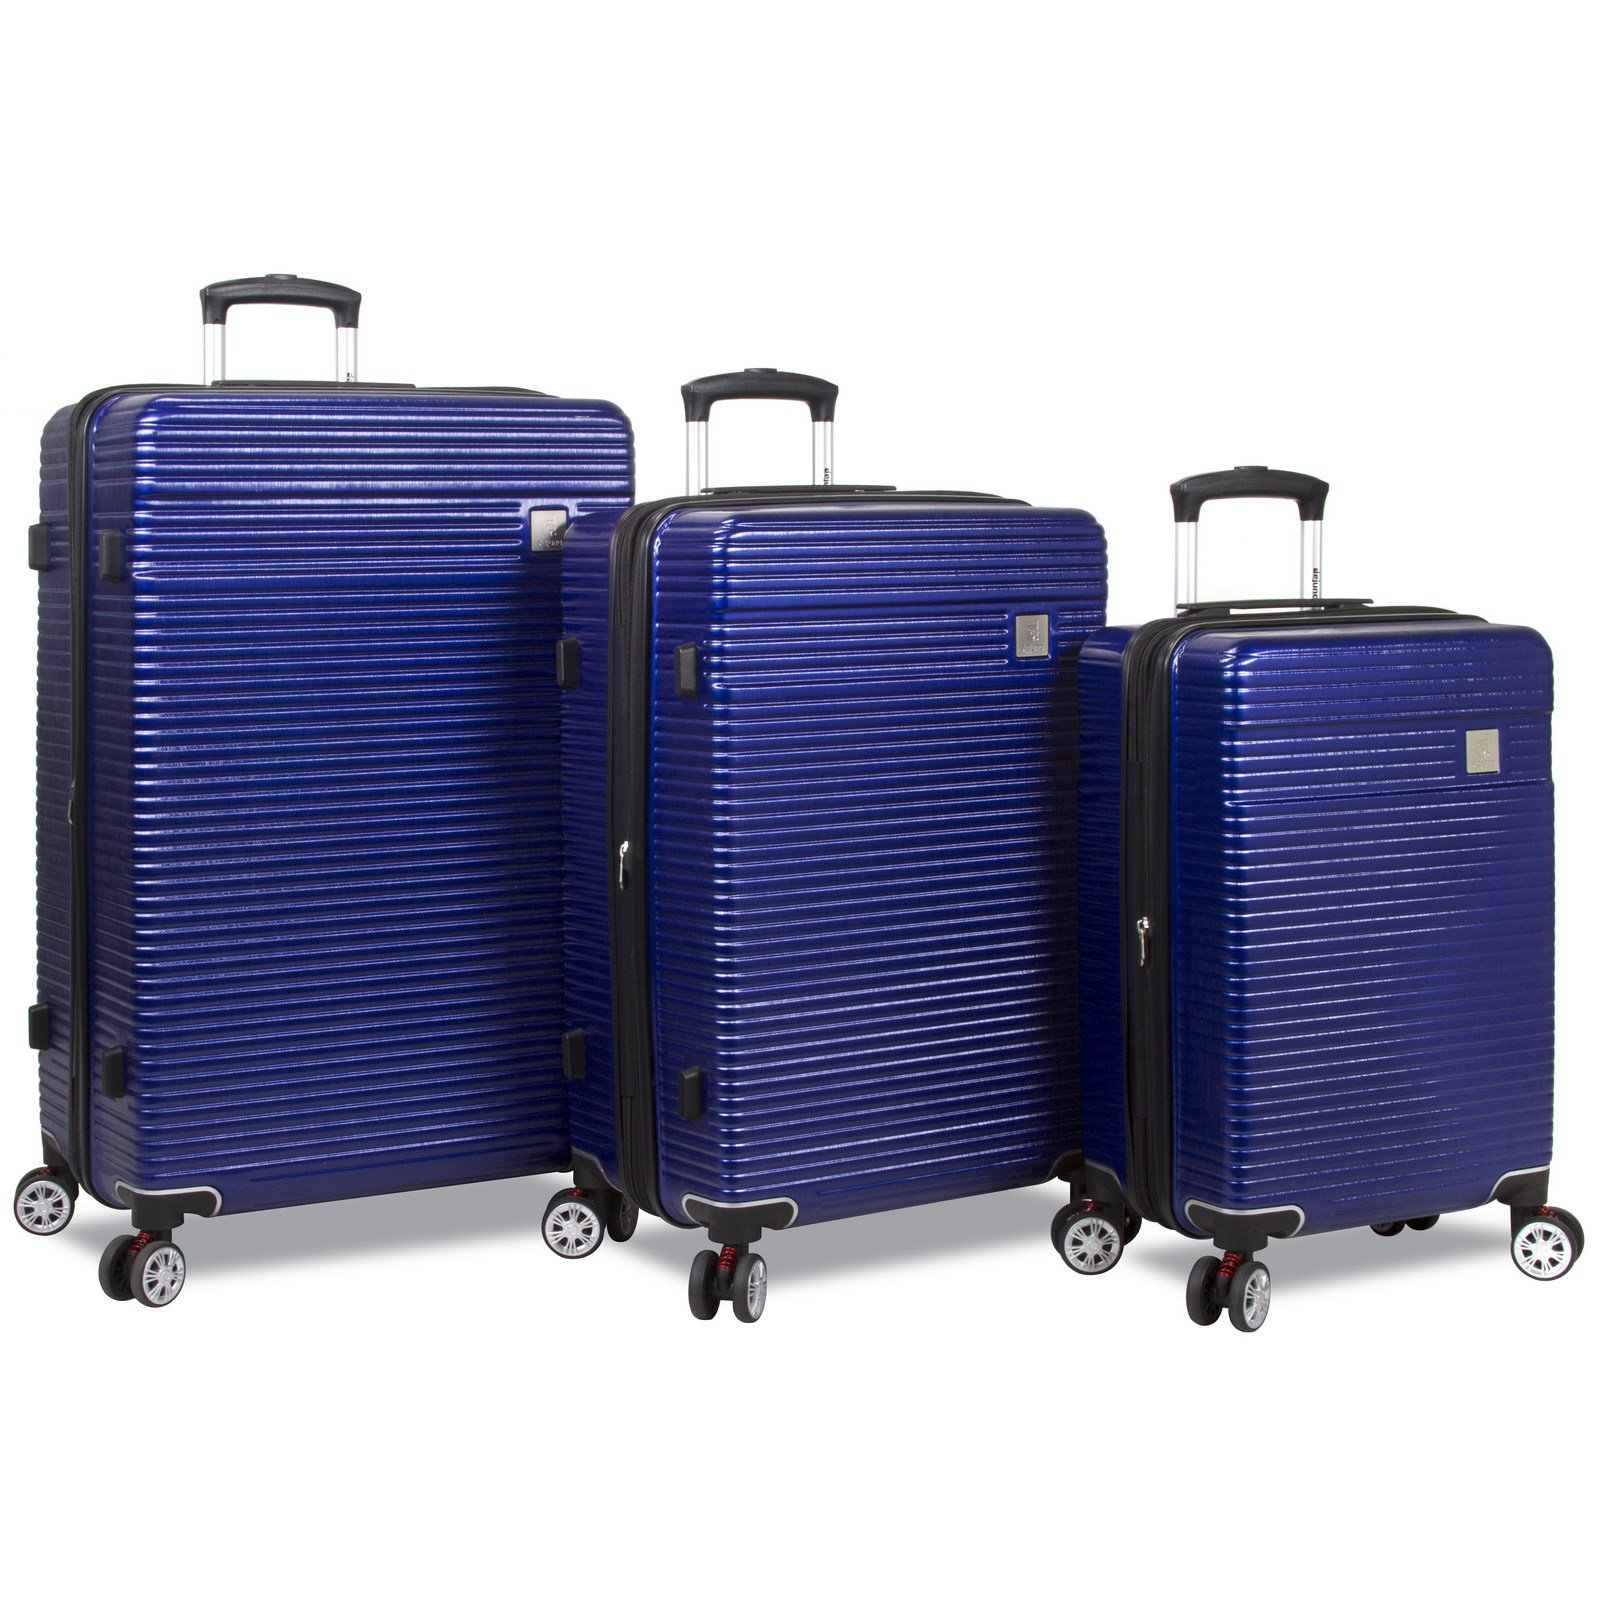 Dejuno Ashford 3-PC Hardside Spinner TSA Combination Lock Luggage Set - Navy by Dejuno (Image #1)